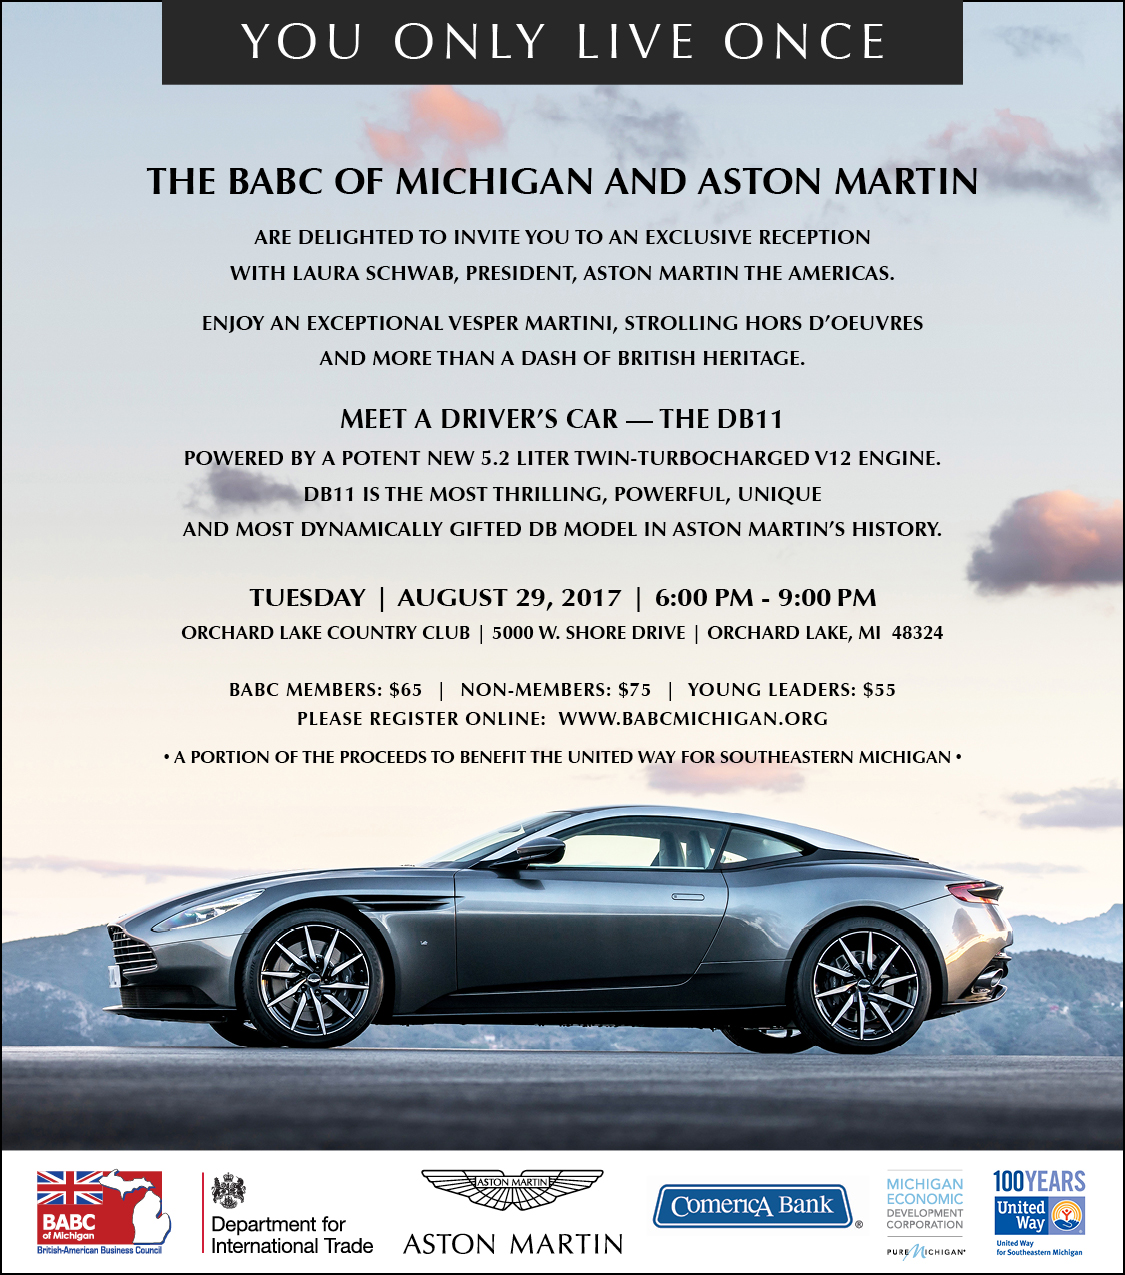 BABC AstonMartin Invitation JPEG